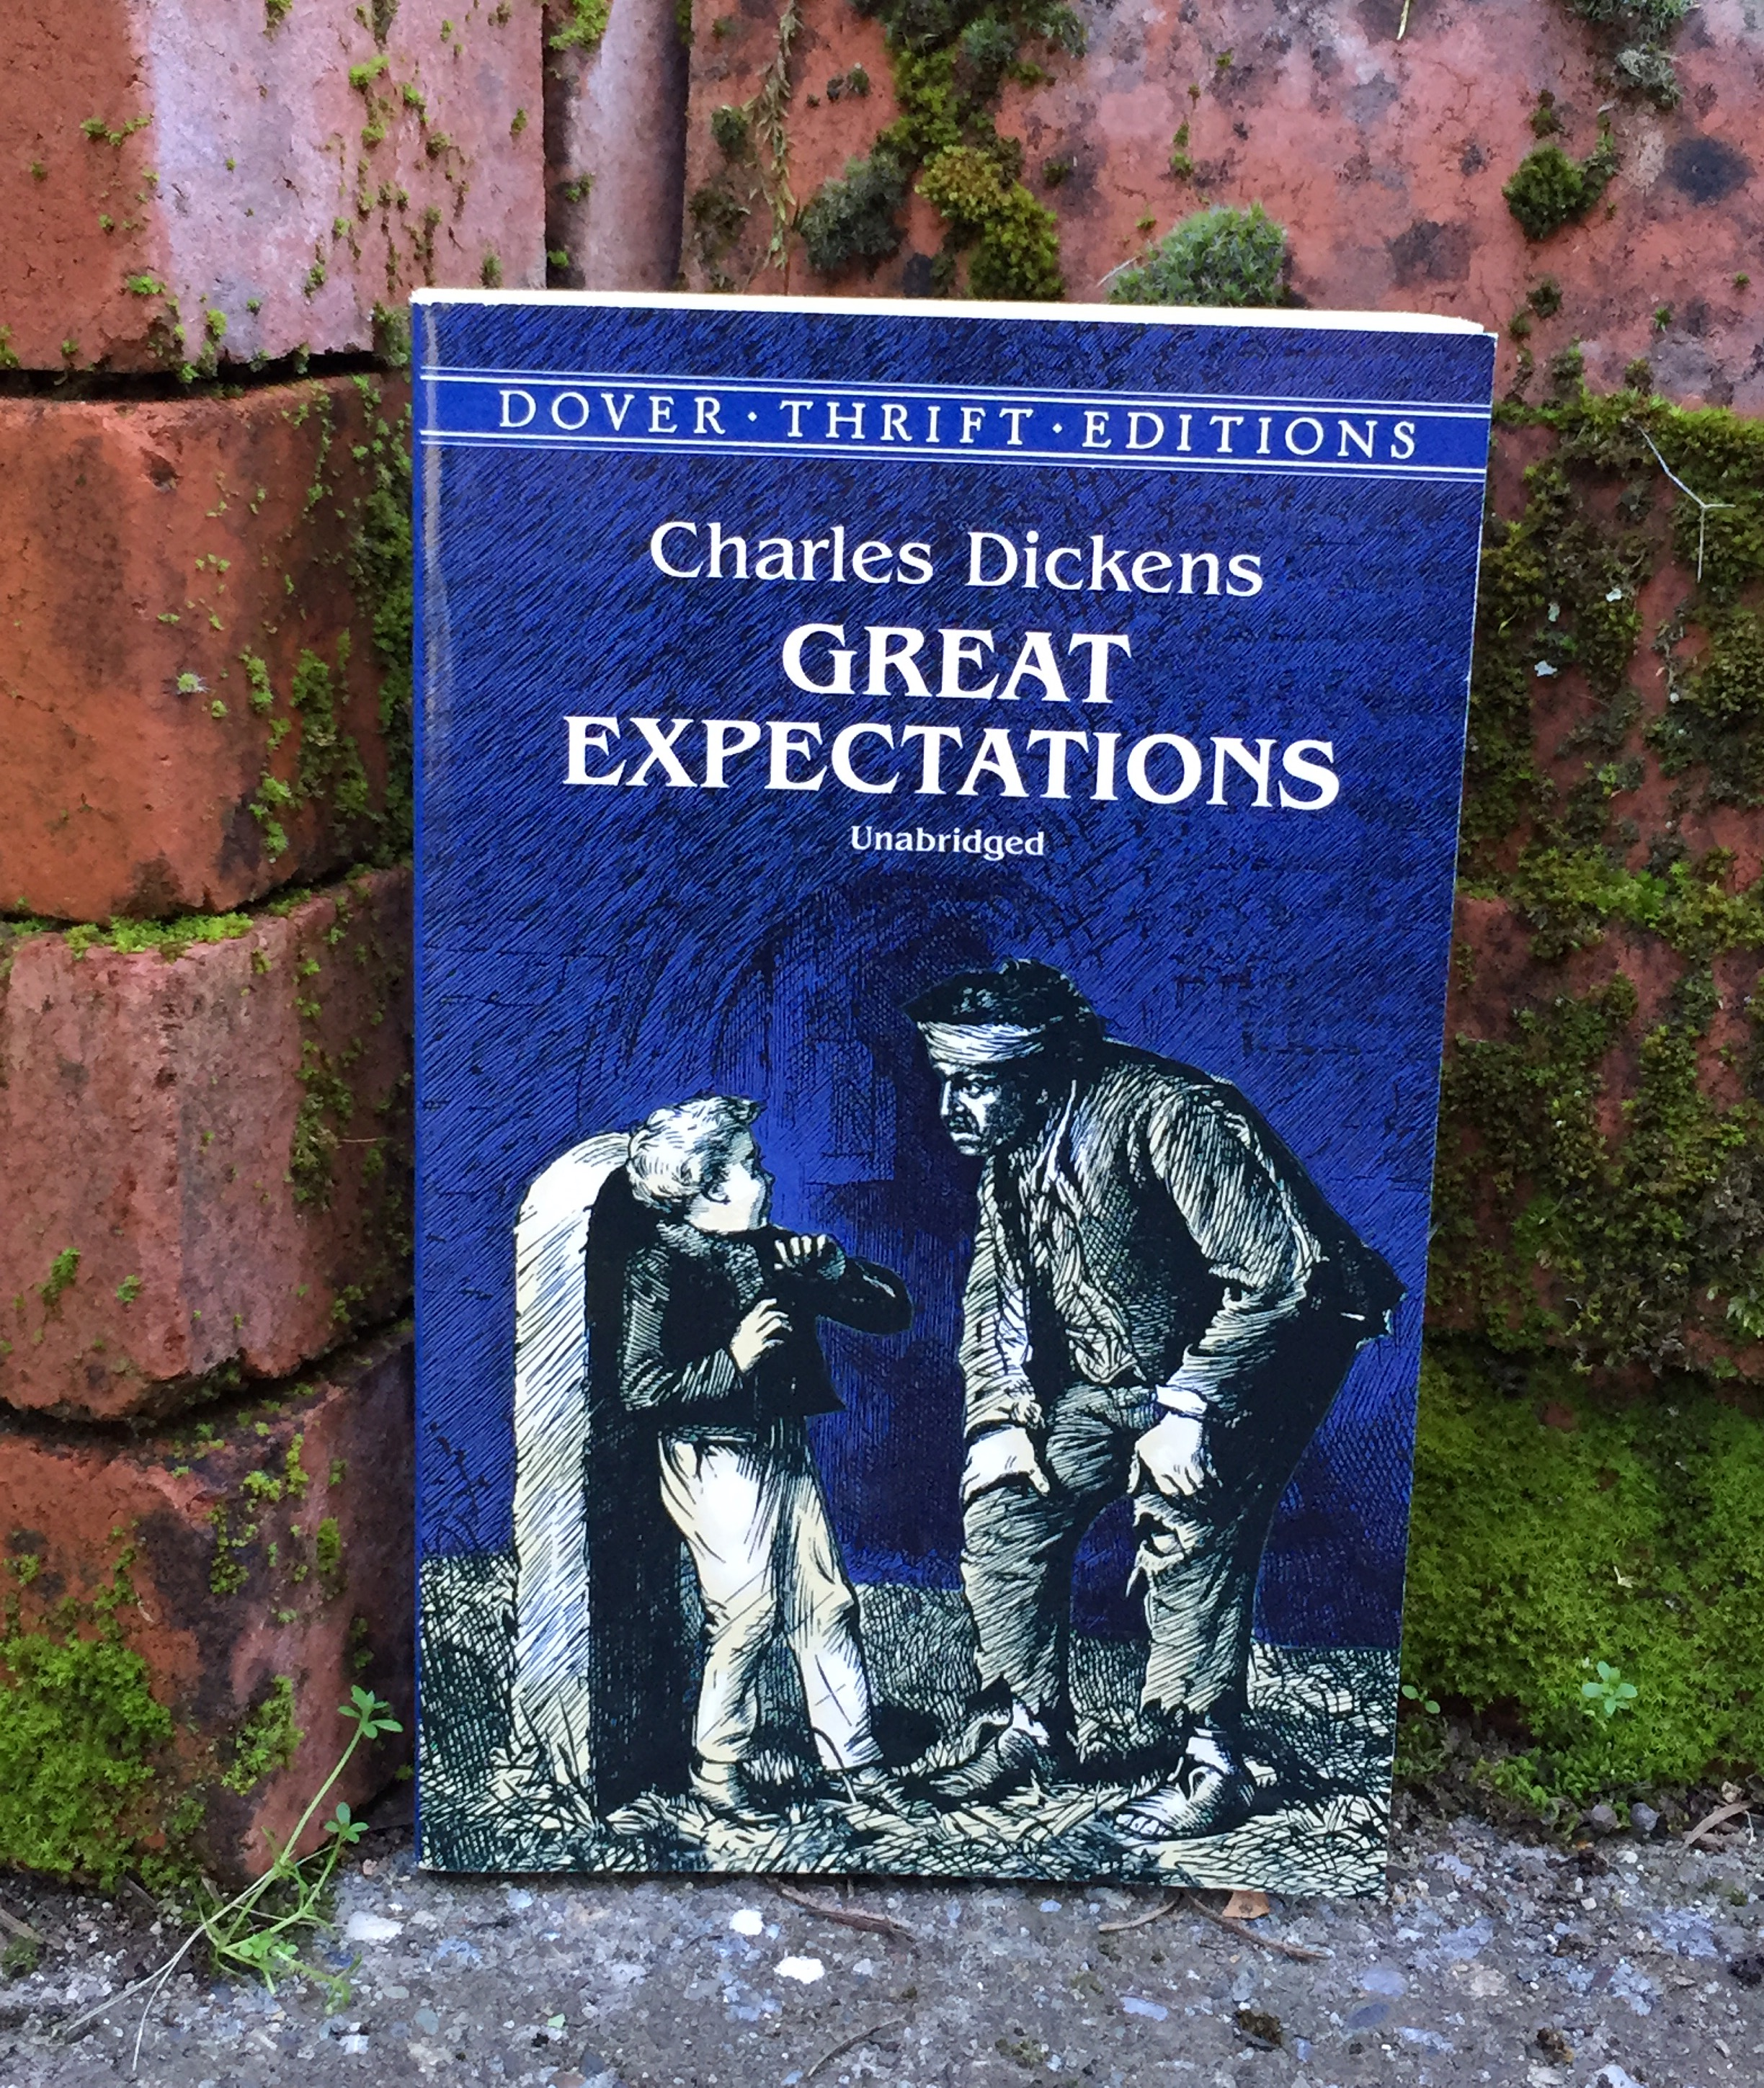 essays on great expectations by charles dickens The charles dickens' great expectations, a novel released in 1861 about social criticism, is a story of a young boy named pip who was in struggle to find his fortune or to be successful rather than to be confined on being a common man of his time.